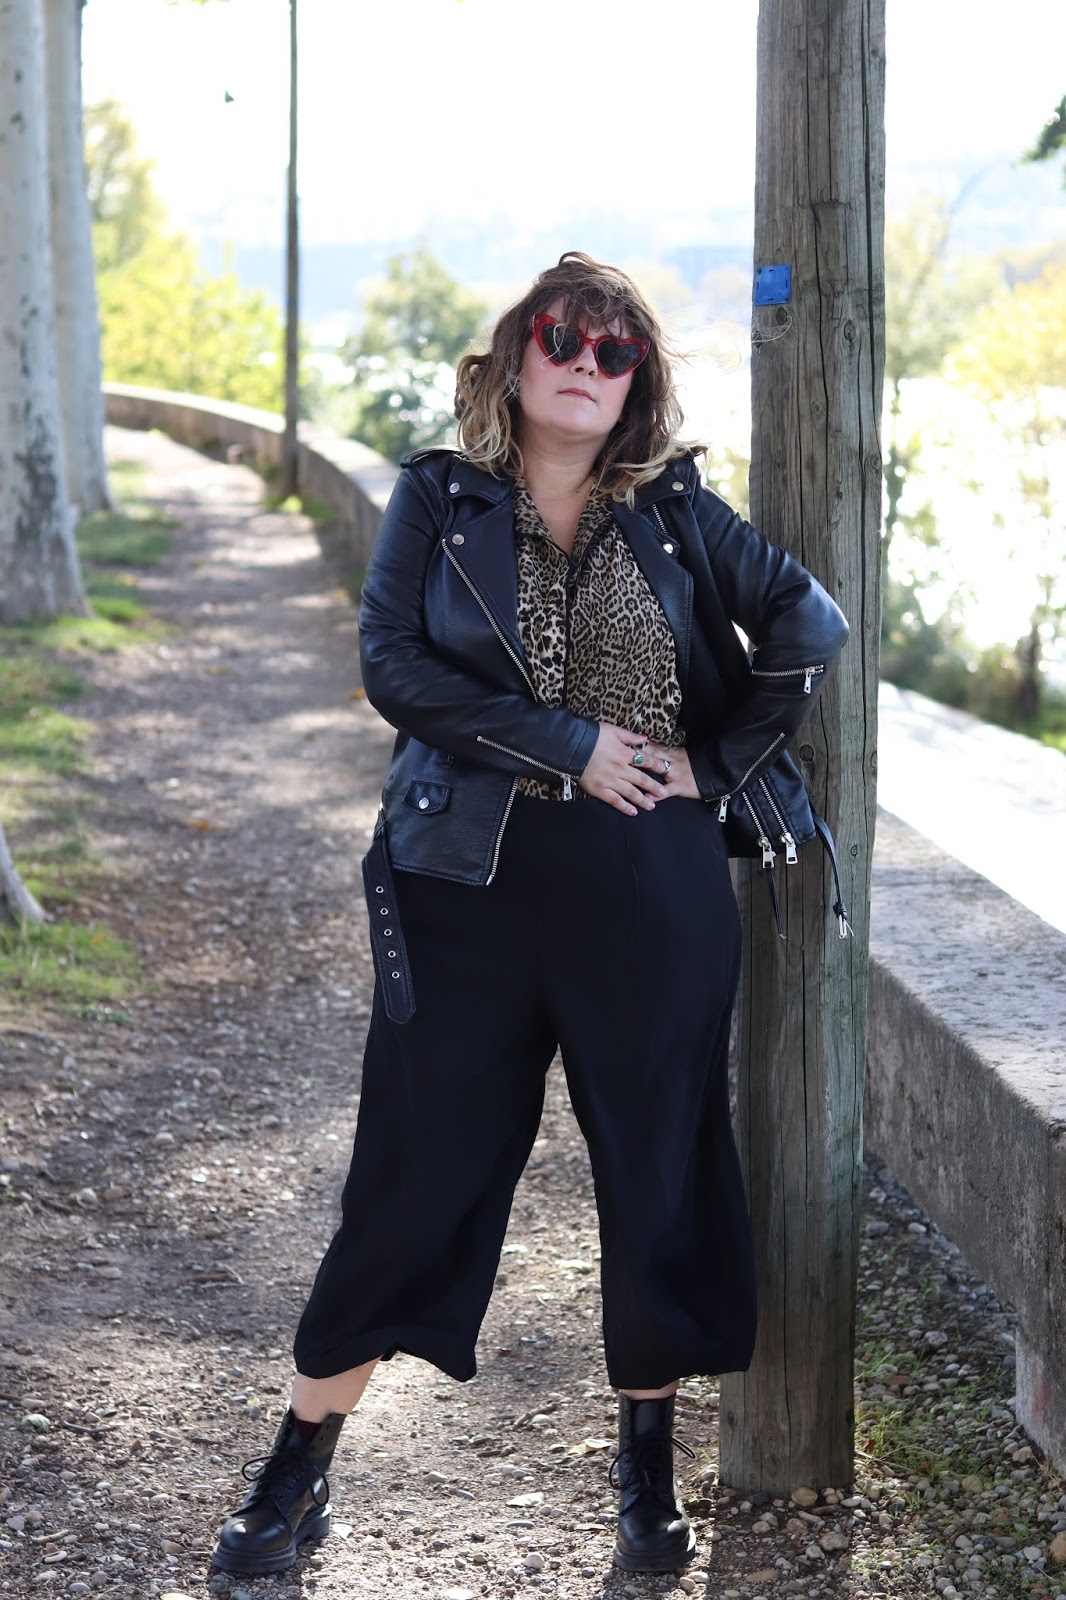 grande taille, blog, plus size, french blogger, lyon, mode, fashion, plus fashion, outfit, grande taille, mode, Lyon, look, plus size, bodypositive, french blogger, curves, loveyourself curvy gang